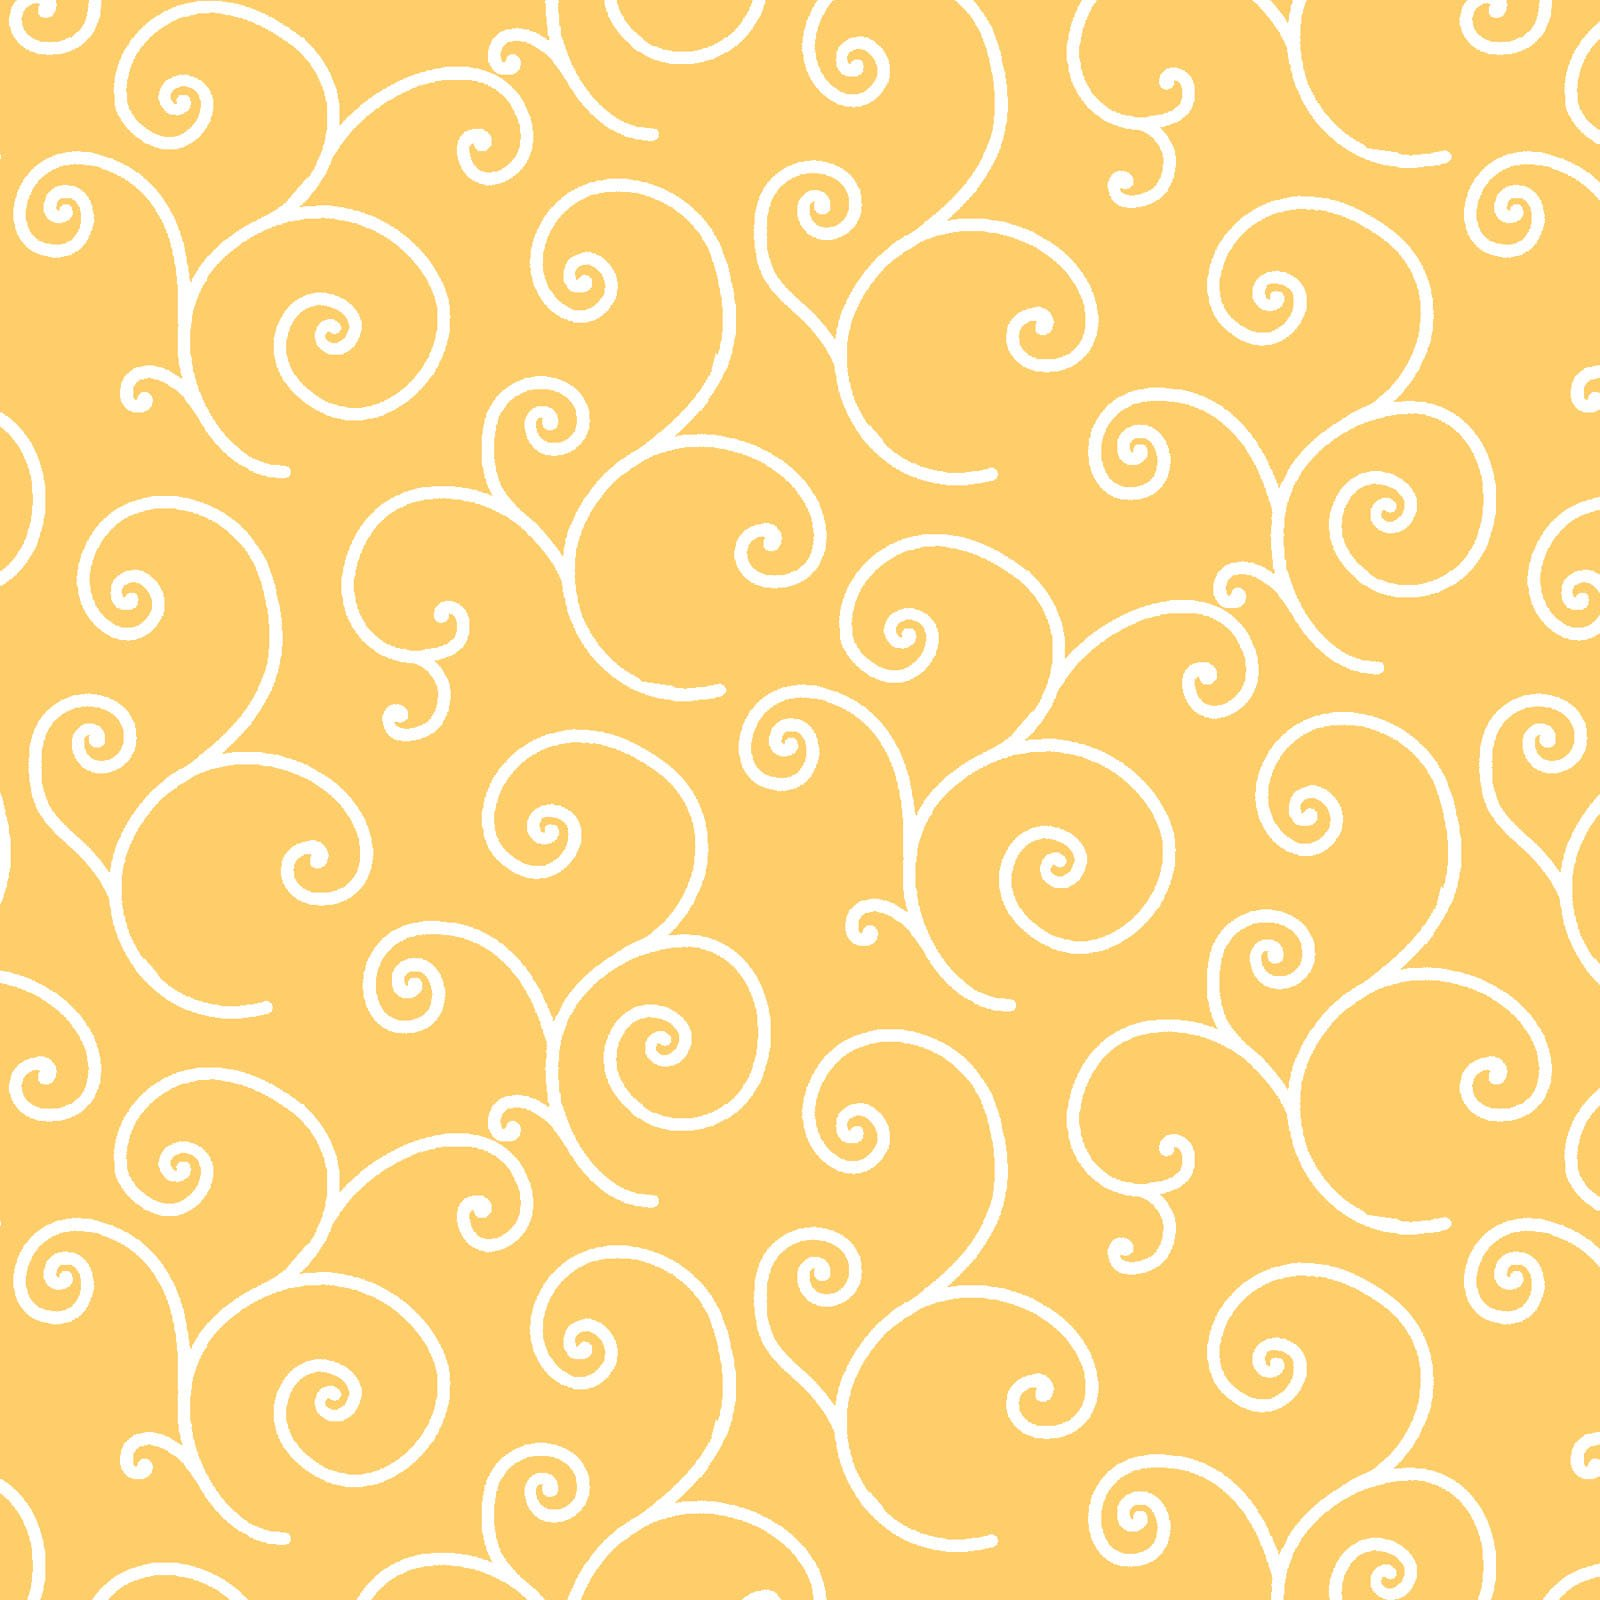 EESC-QB202 S - KIMBERBELL QUILT BACKS 108 BY KIMBERBELL SCROLL YELLOW - ARRIVING MARCH 2021